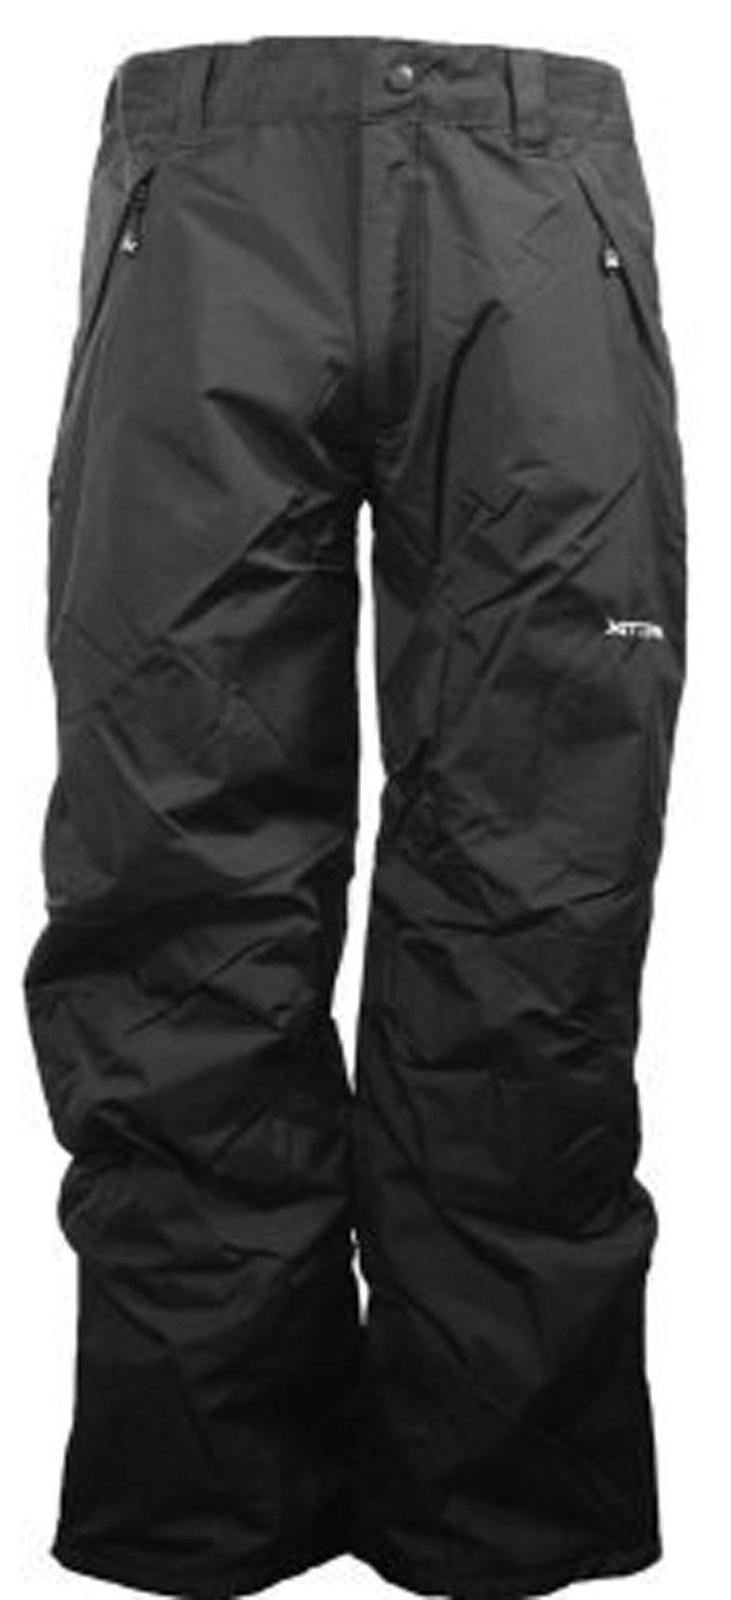 new womens insulated pant ski snow snowboard